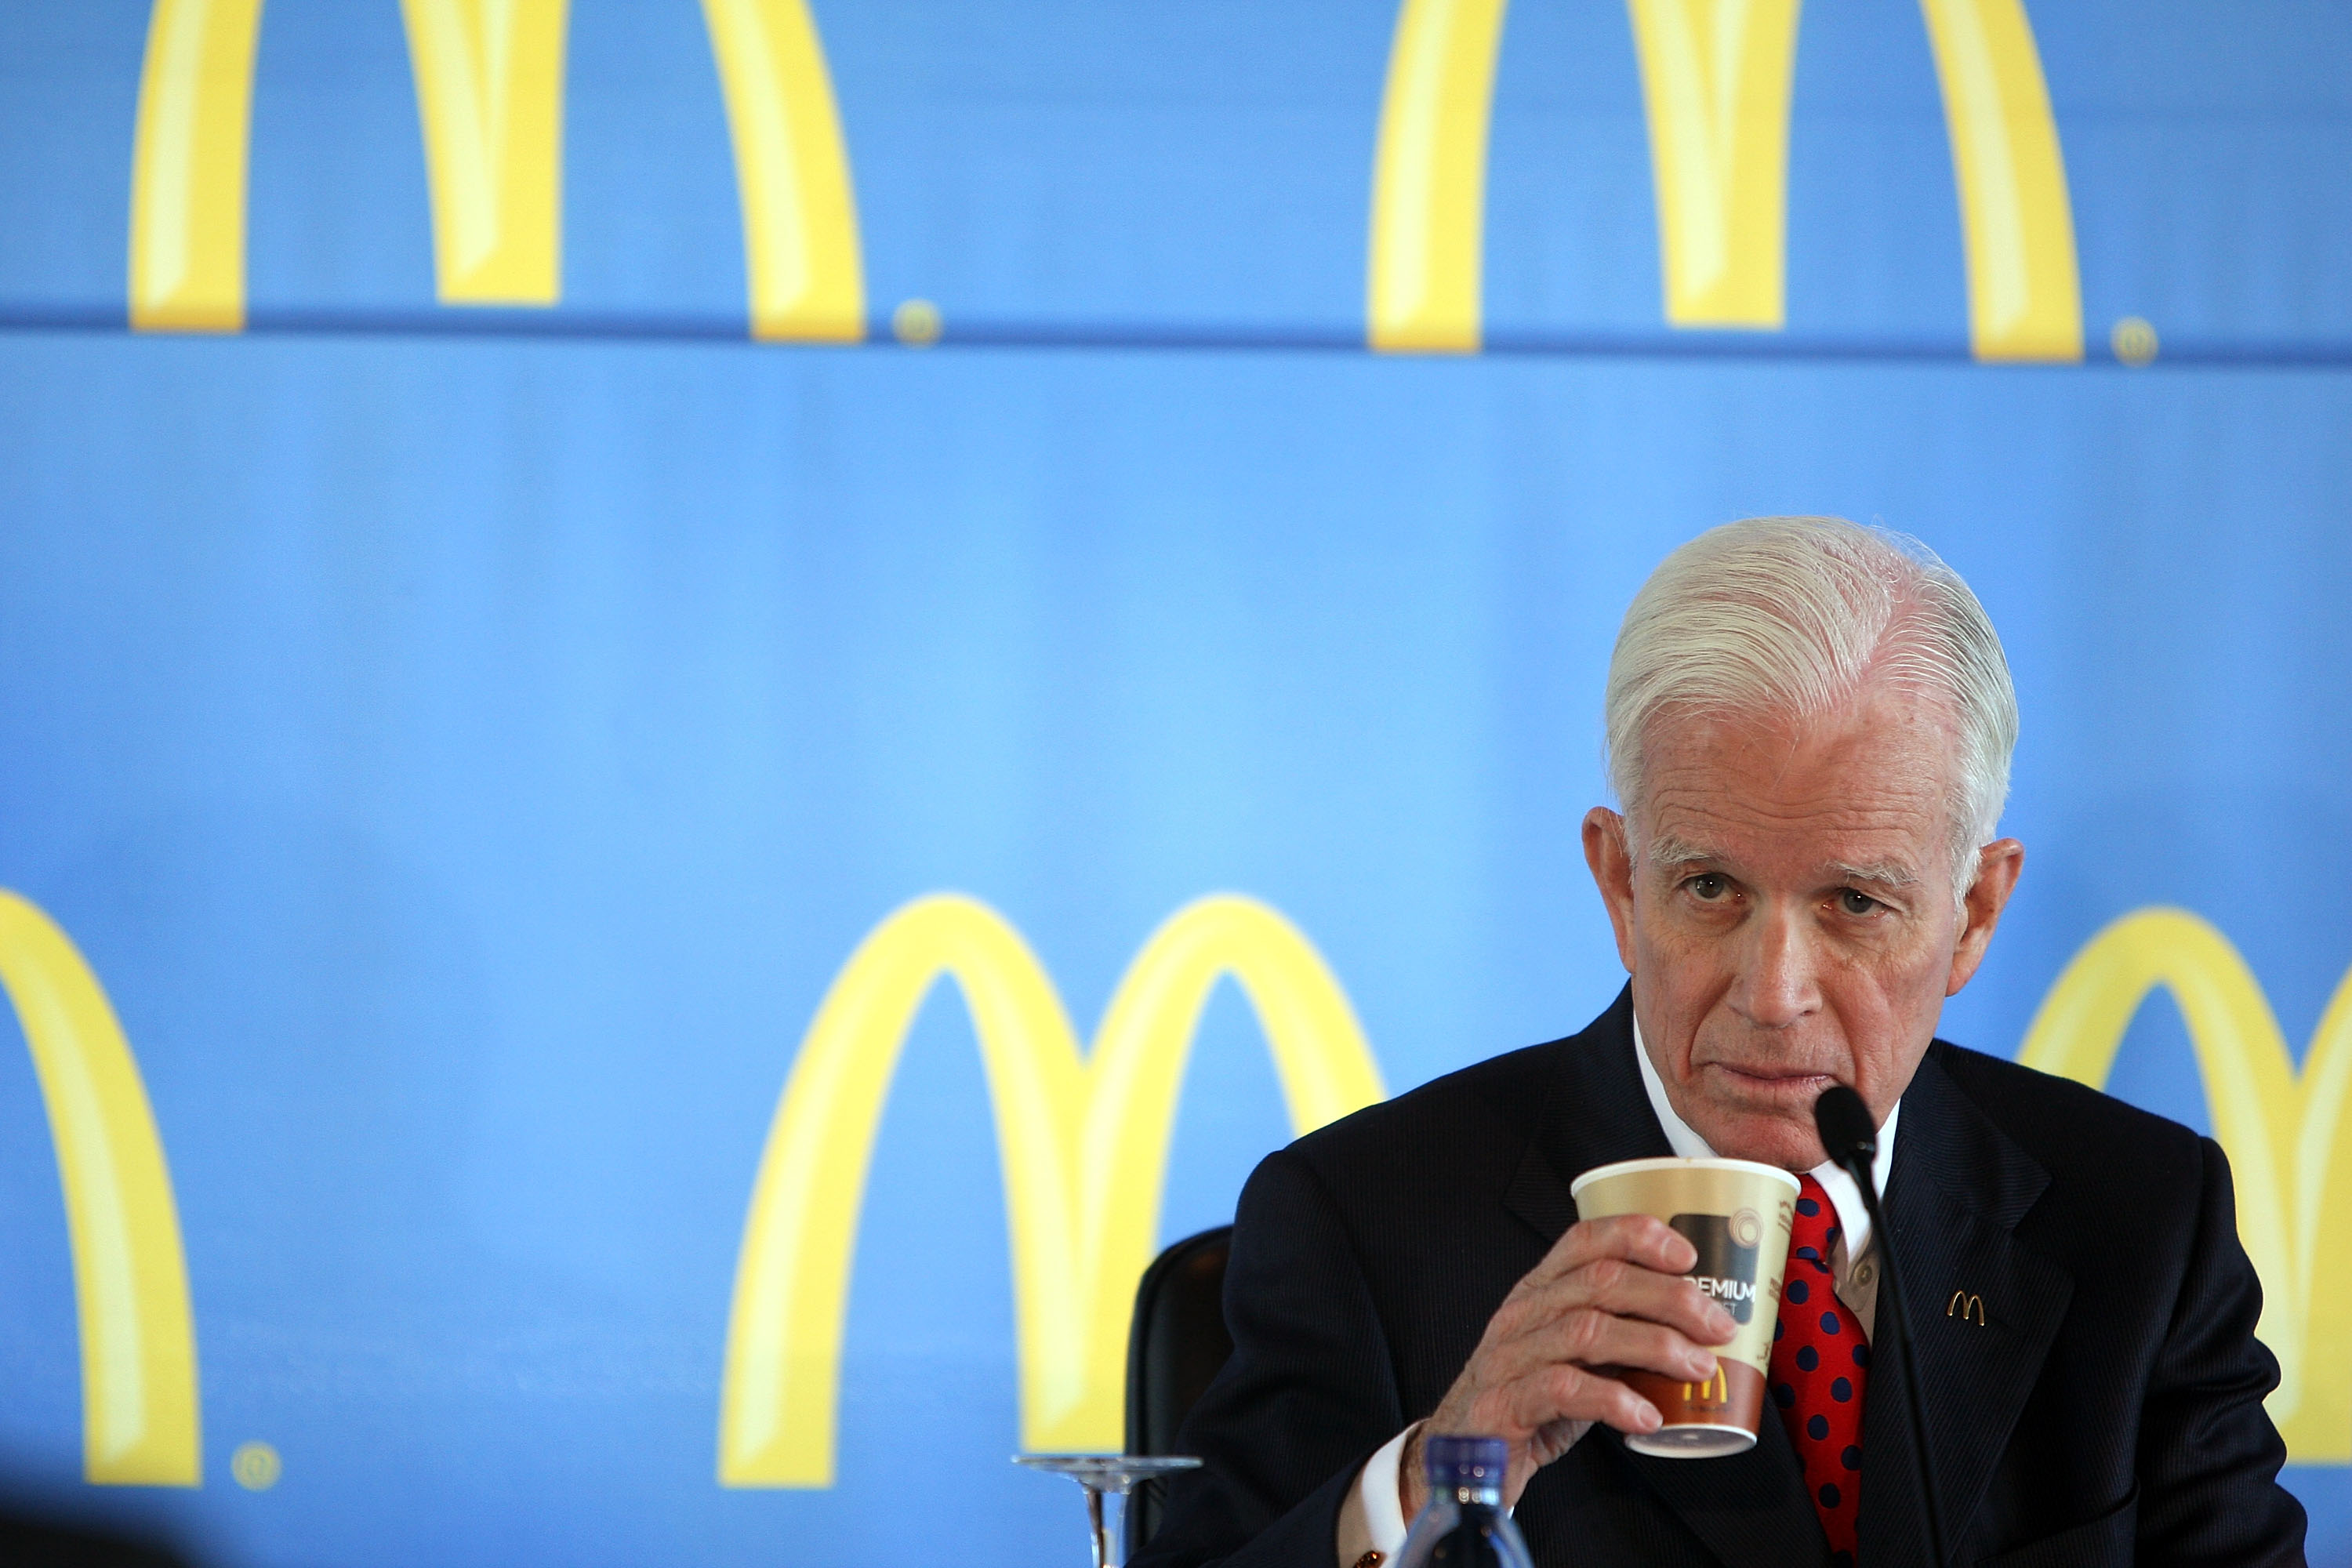 McDonalds Holds Annual Shareholders Meeting